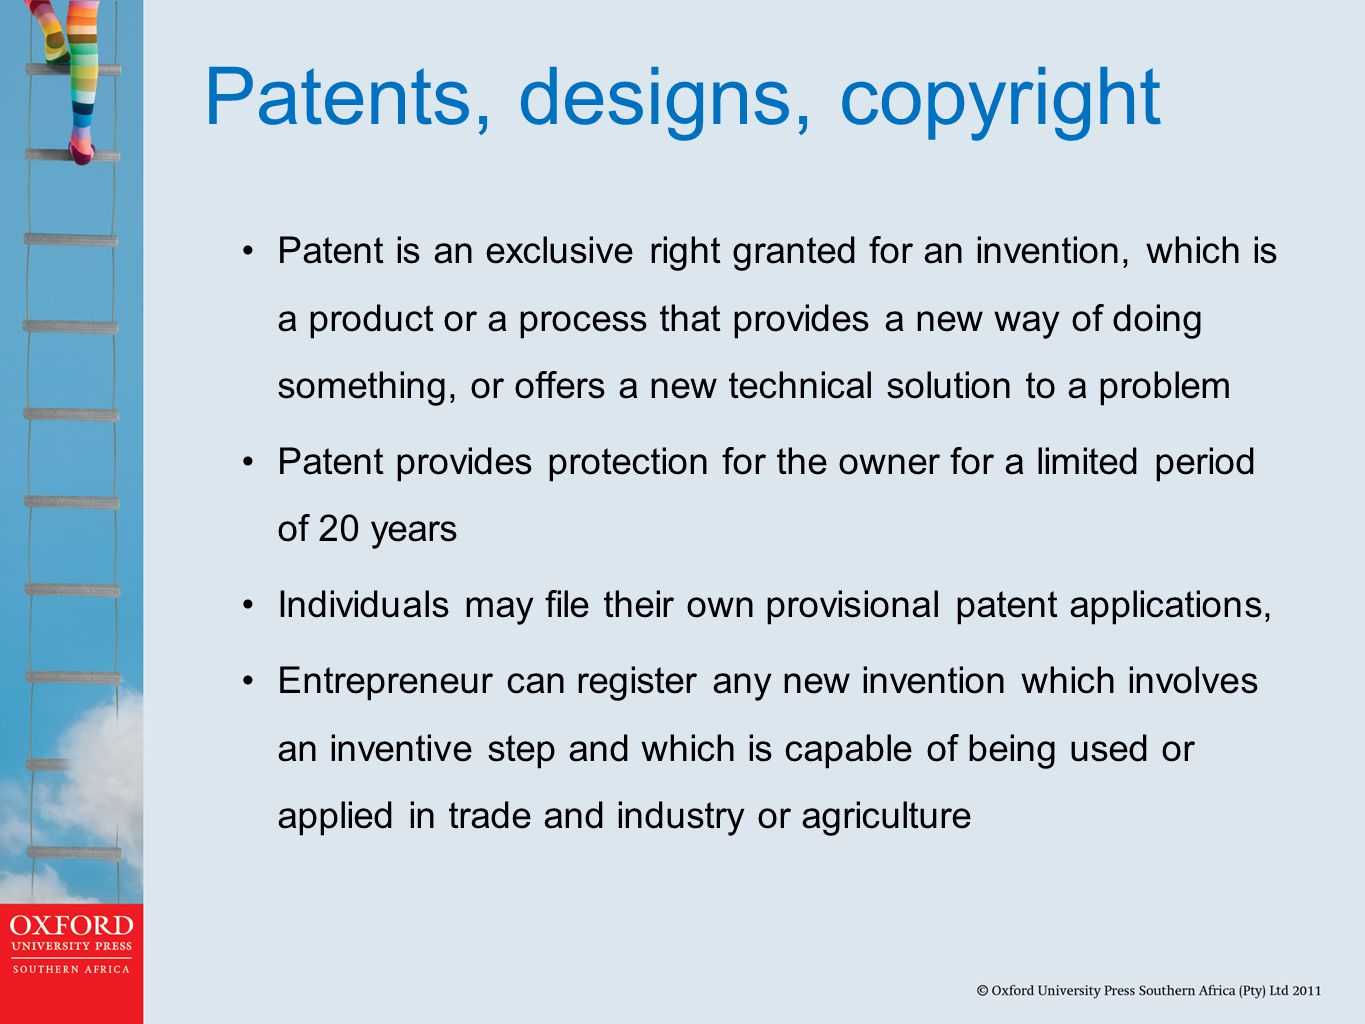 Patents, designs, copyright Patent is an exclusive right granted for an invention, which is a product or a process that provides a new way of doing something, or offers a new technical solution to a problem Patent provides protection for the owner for a limited period of 20 years Individuals may file their own provisional patent applications, Entrepreneur can register any new invention which involves an inventive step and which is capable of being used or applied in trade and industry or agriculture